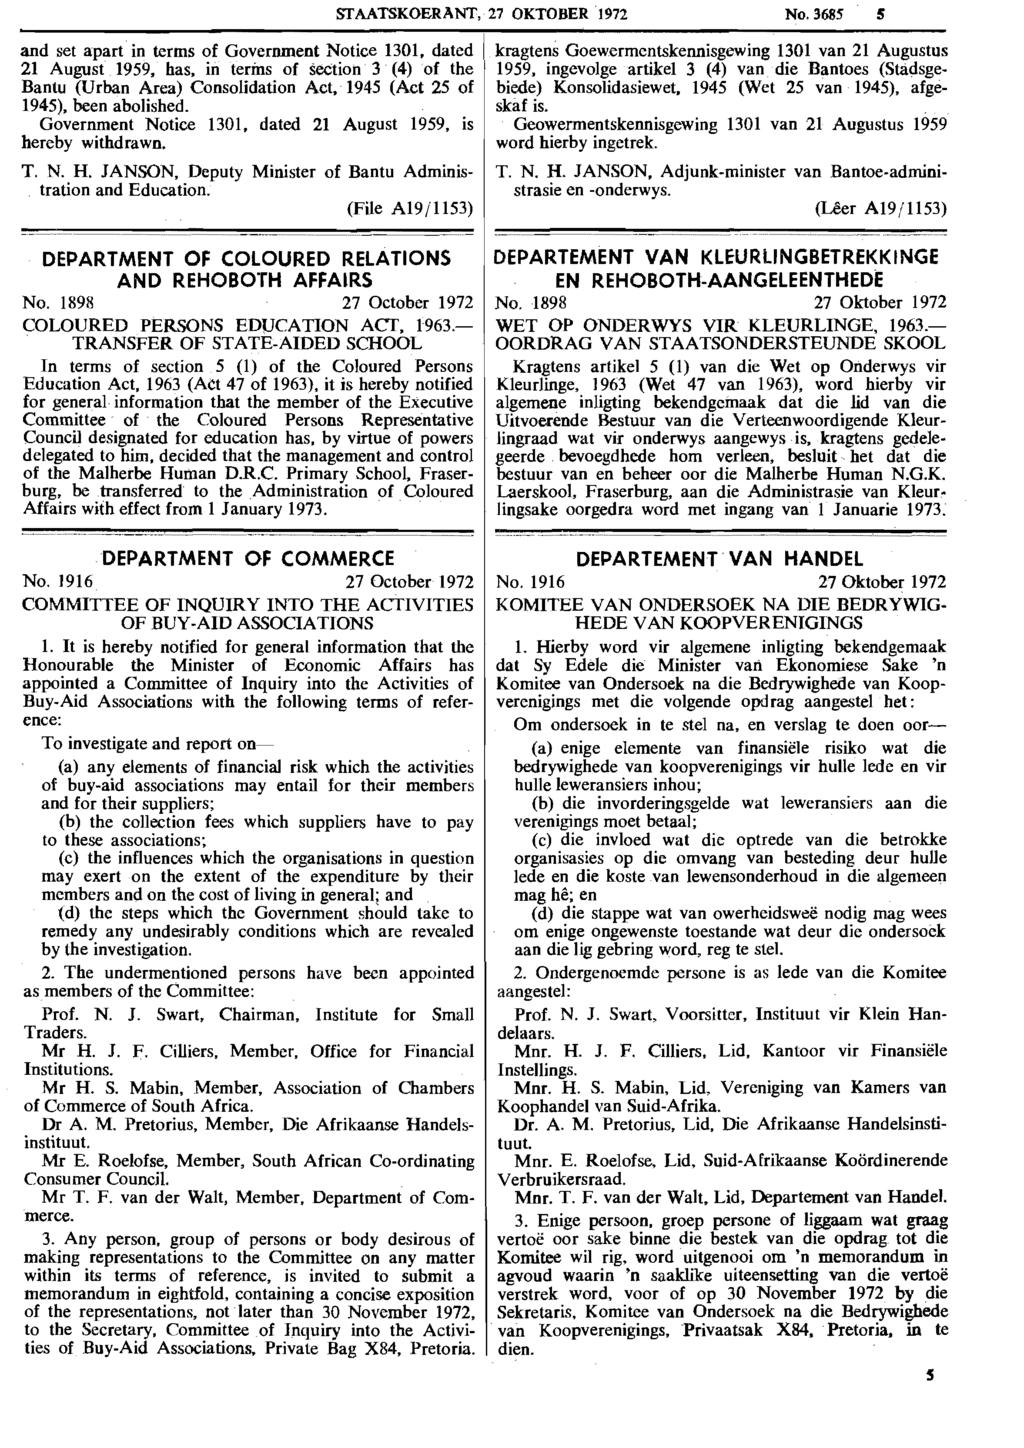 and set apart in terms of Government Notice 1301, dated I 21 August 1959, has, in tenns of section 3 (4) of the Bantu (Urban Area) Consolidation Act. 1945 (Act 25 of 1945). been abolished.